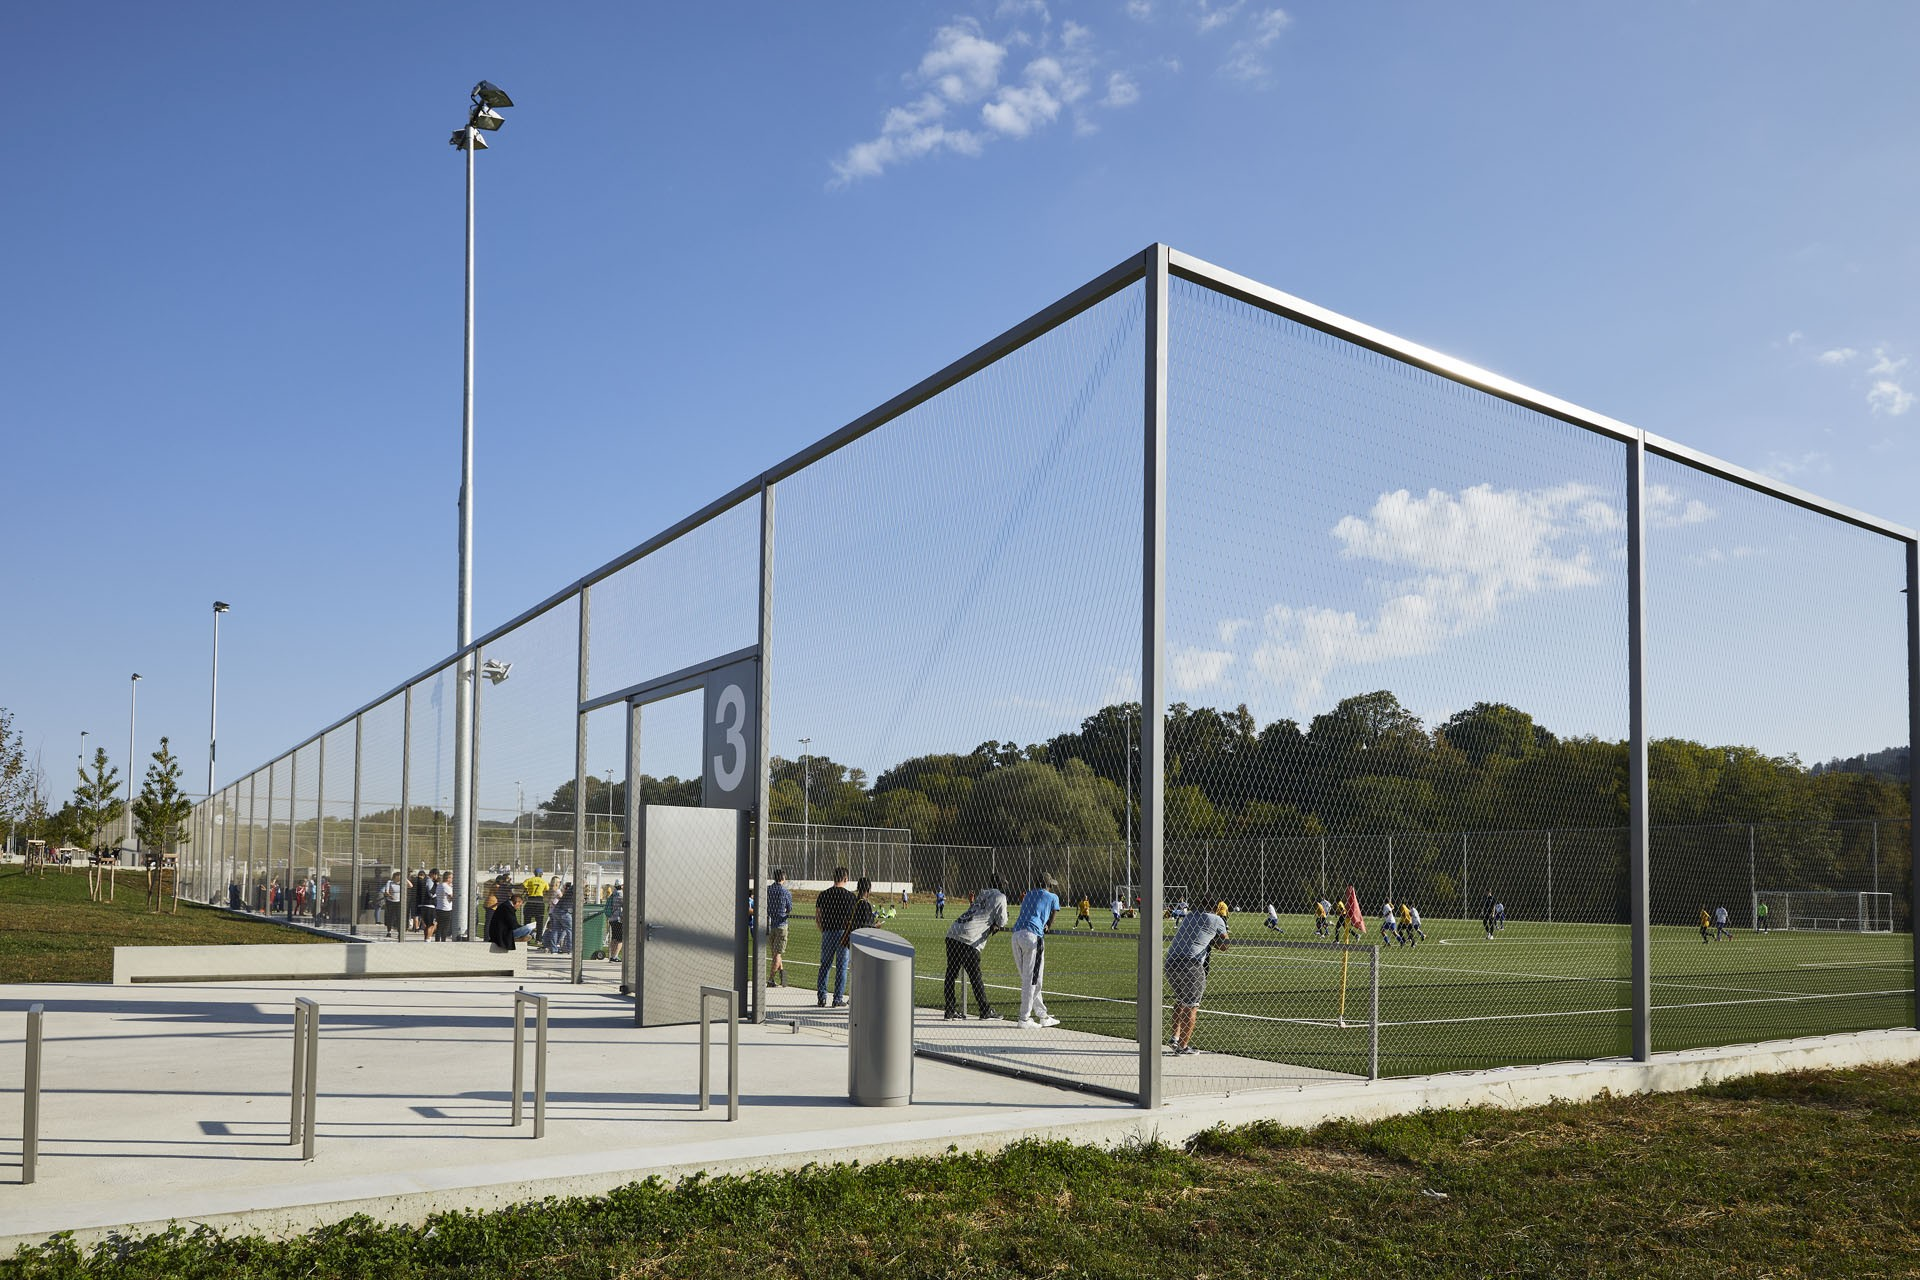 ball stop fence at a football field with nearly transparent mesh